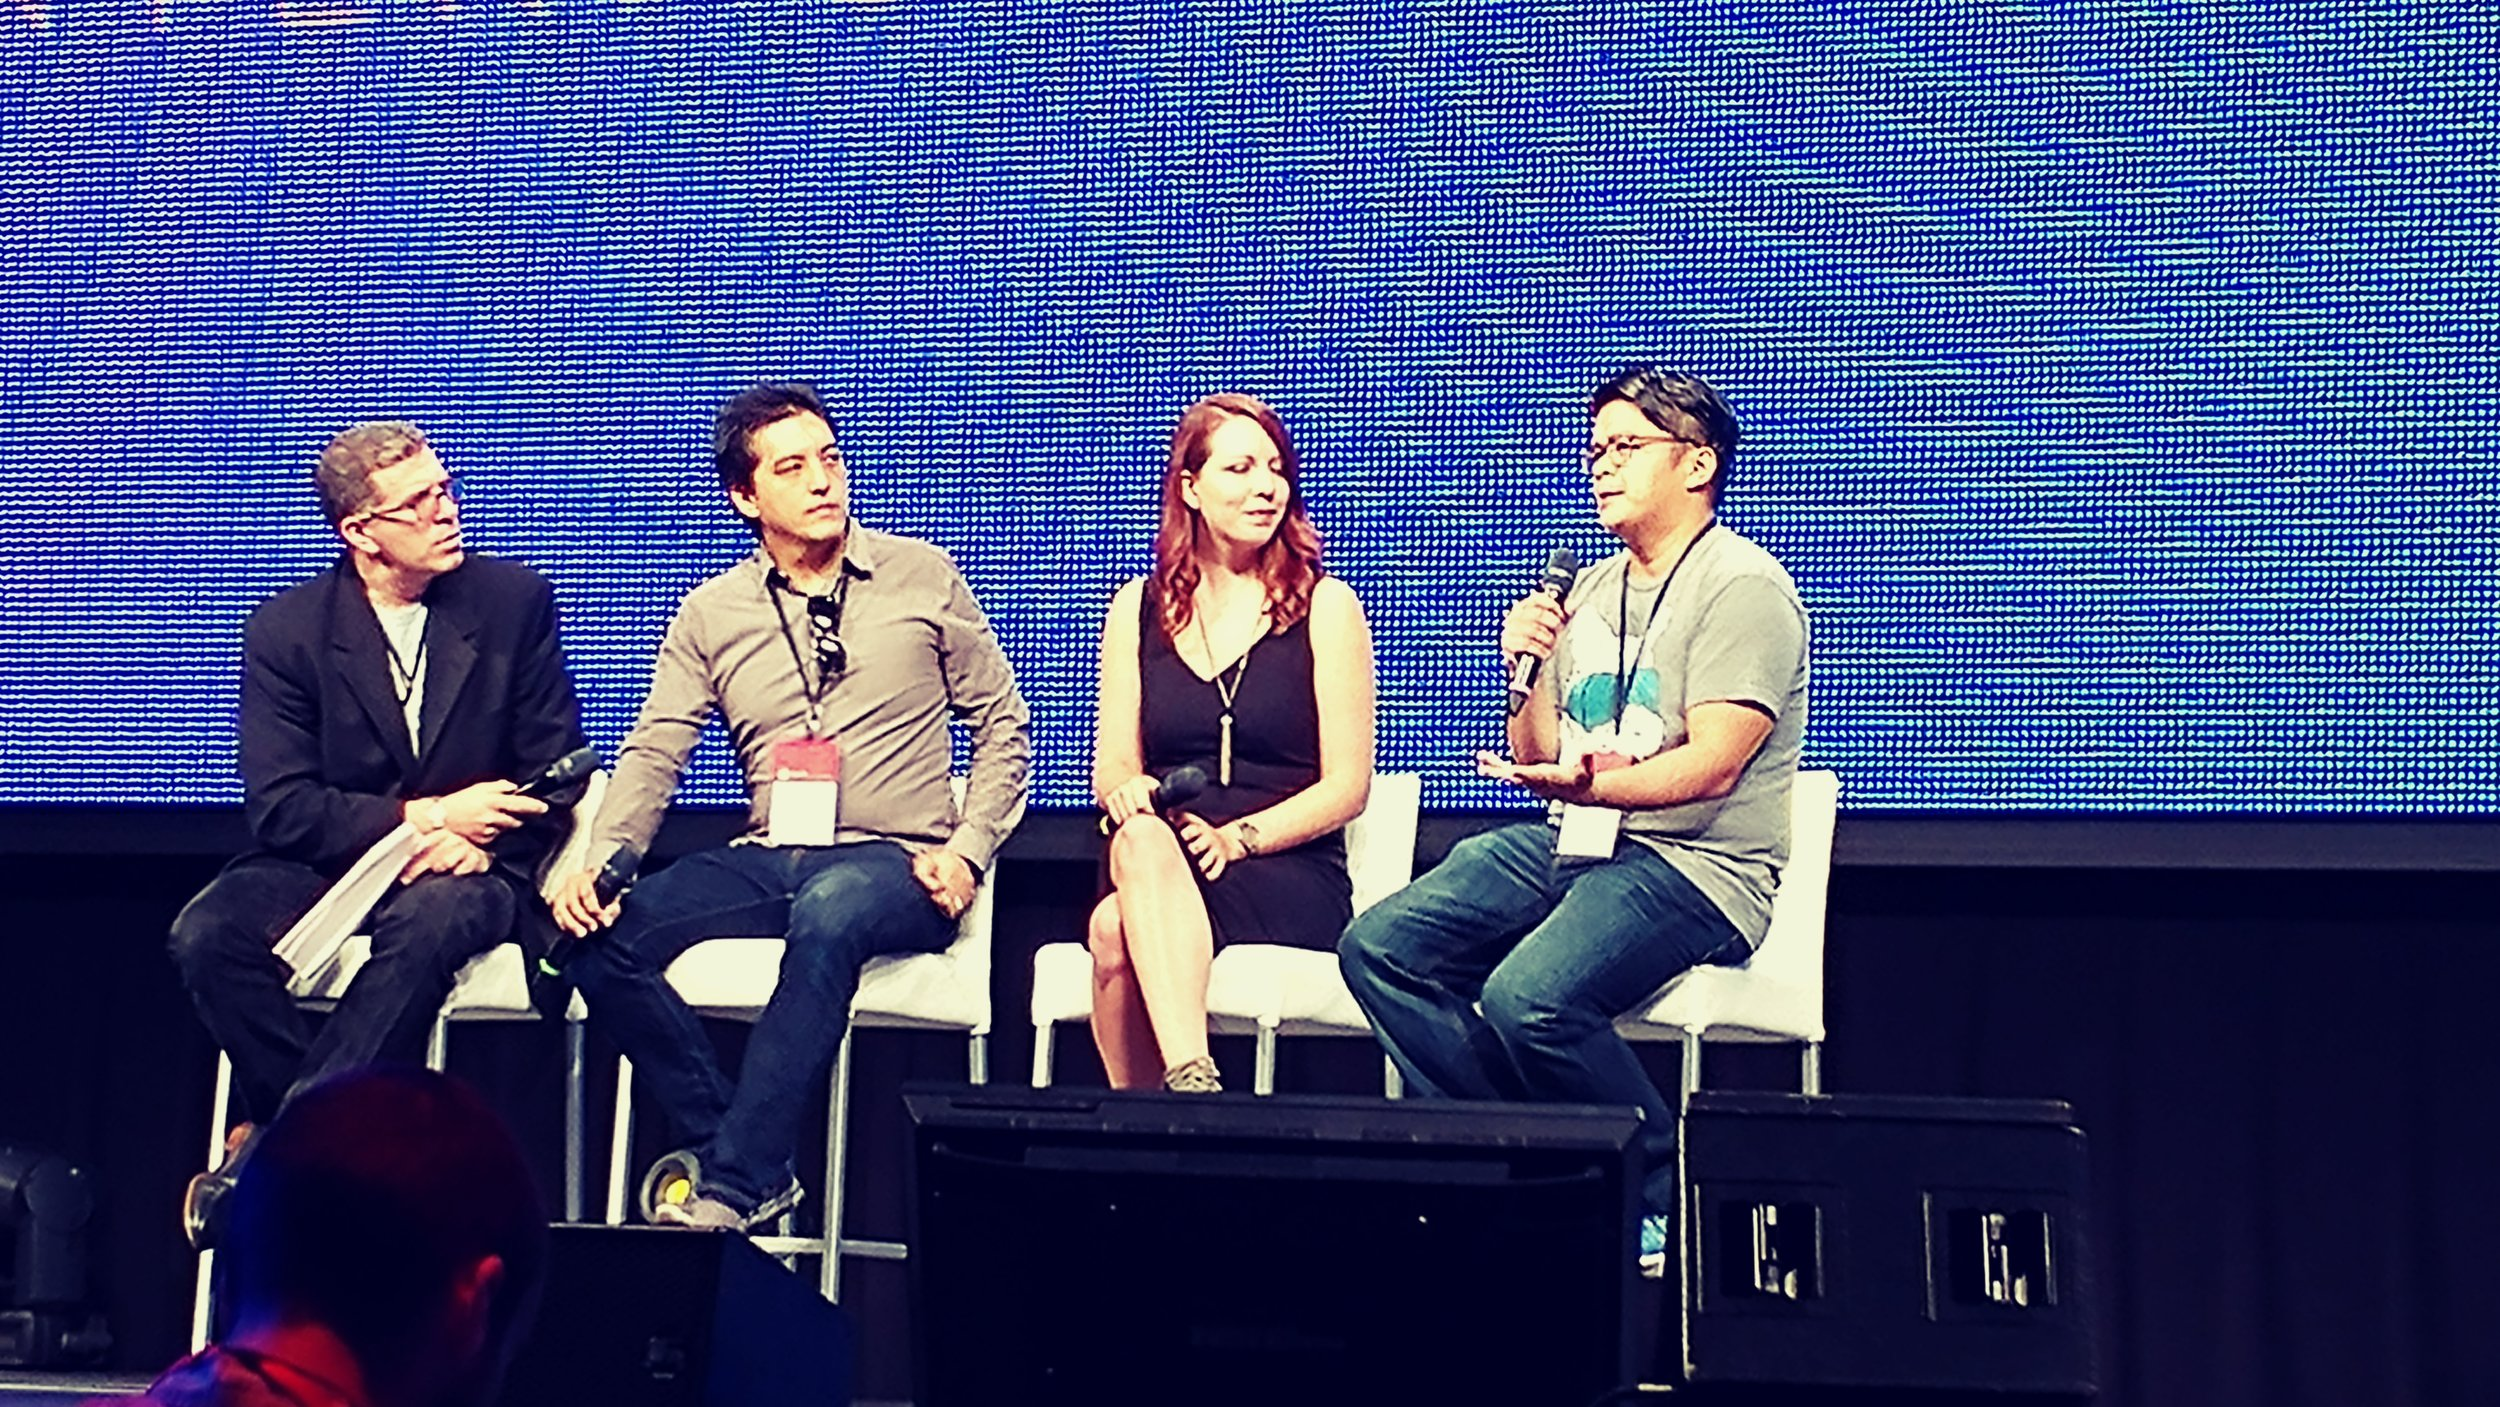 Co-founder, Elbert Perez, discusses the business of VR on a panel at OrlandoiX17.